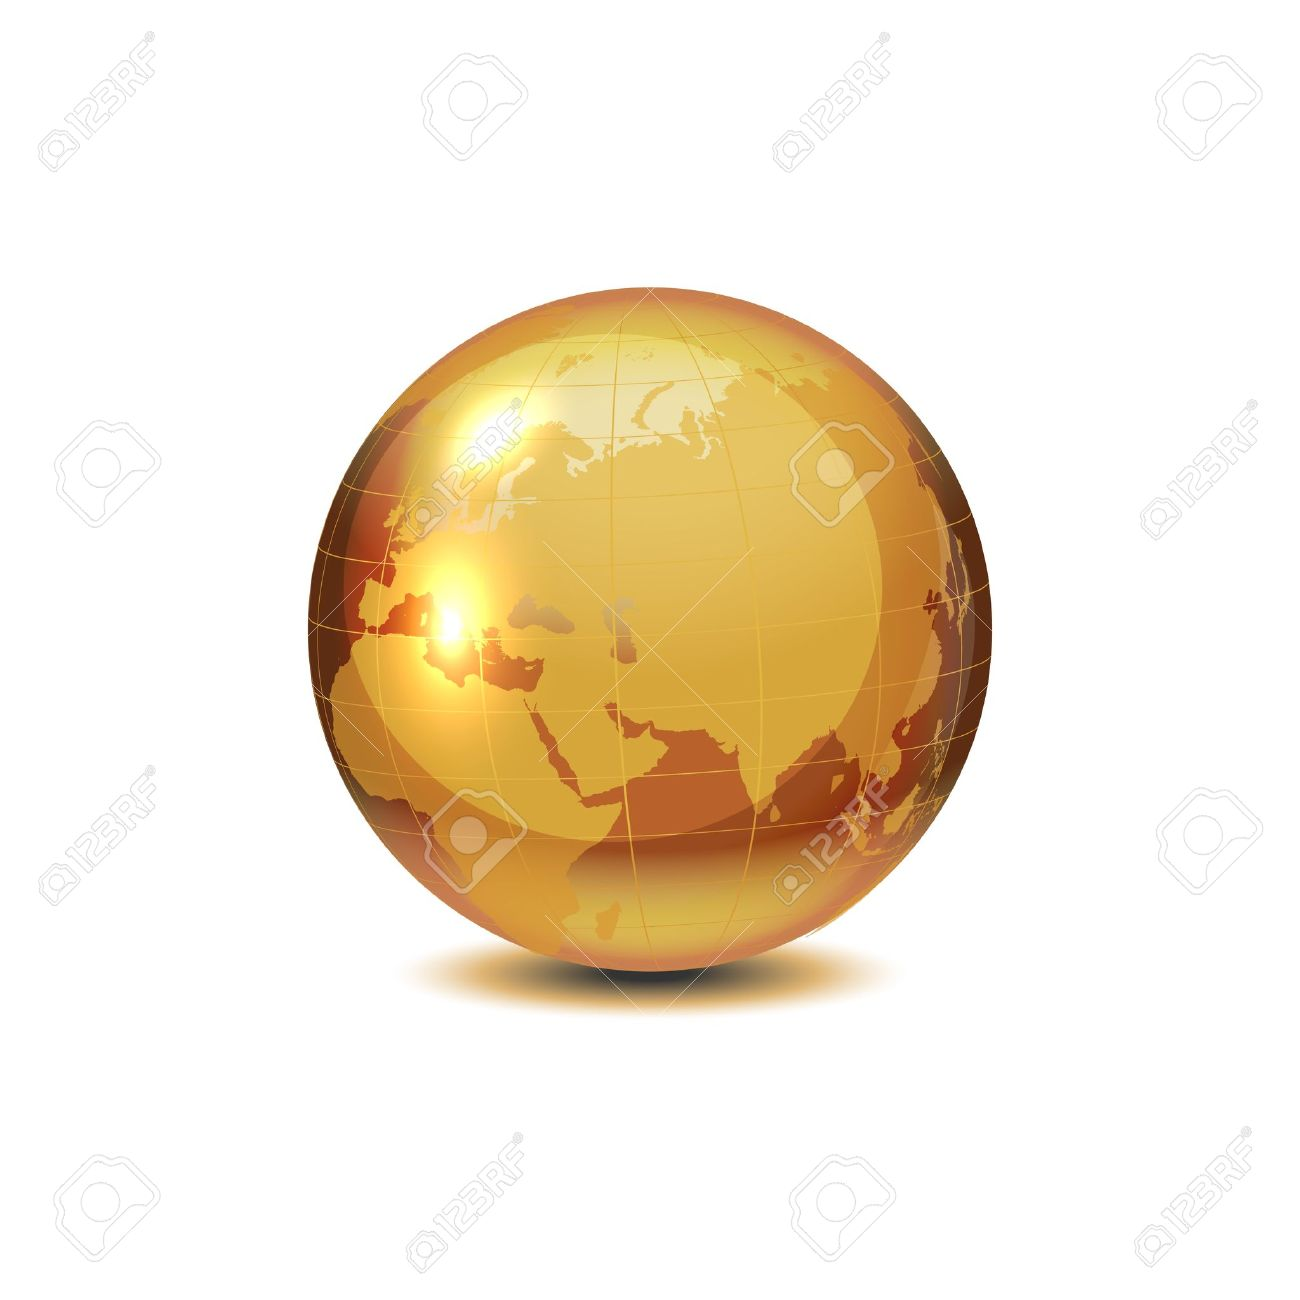 Golden globe with shadow on white, vector illustration. Stock Vector - 12391714